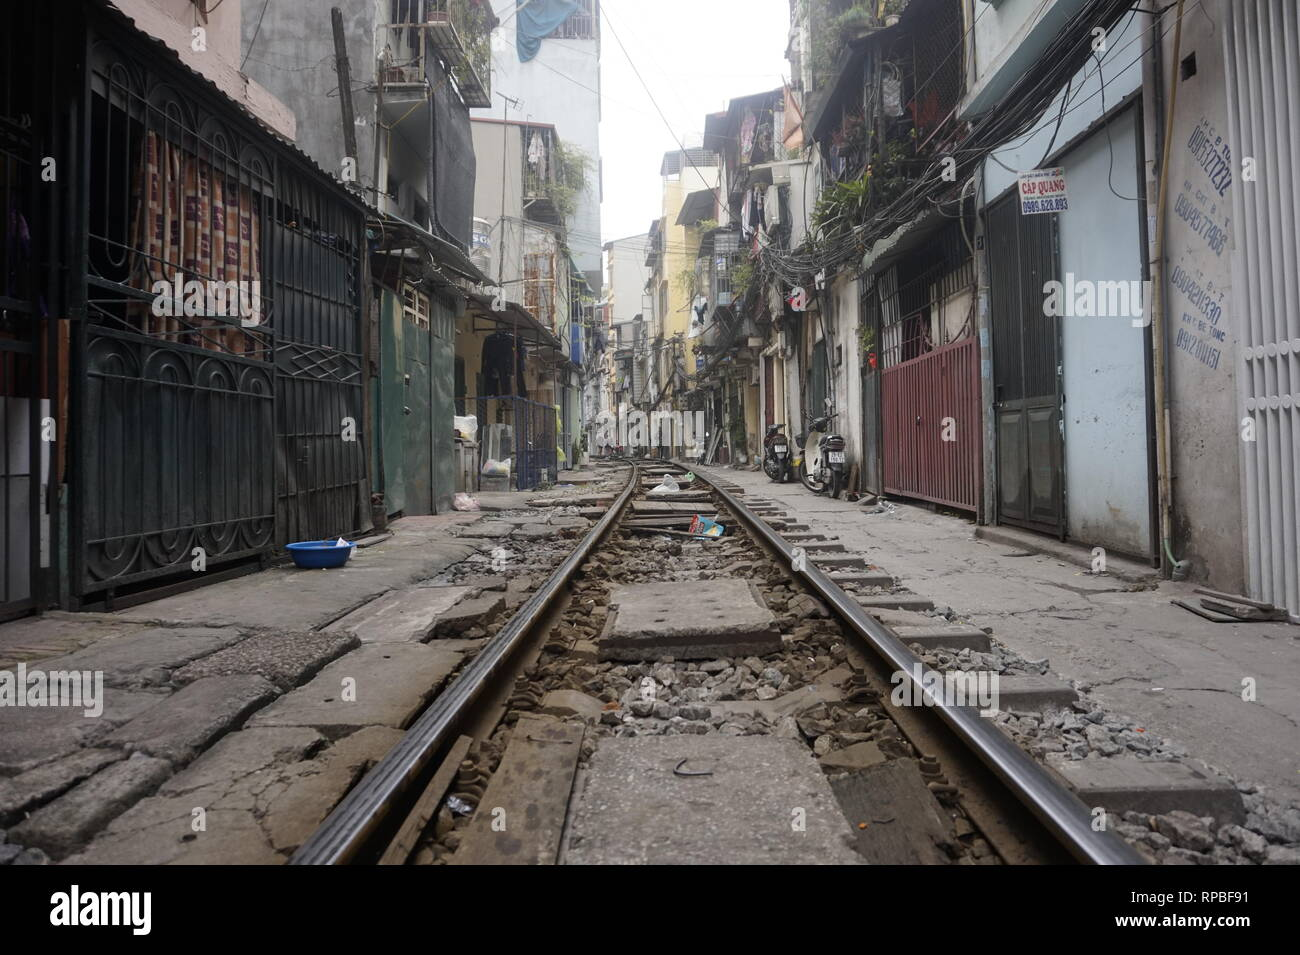 Train Street, Hanoi - Stock Image